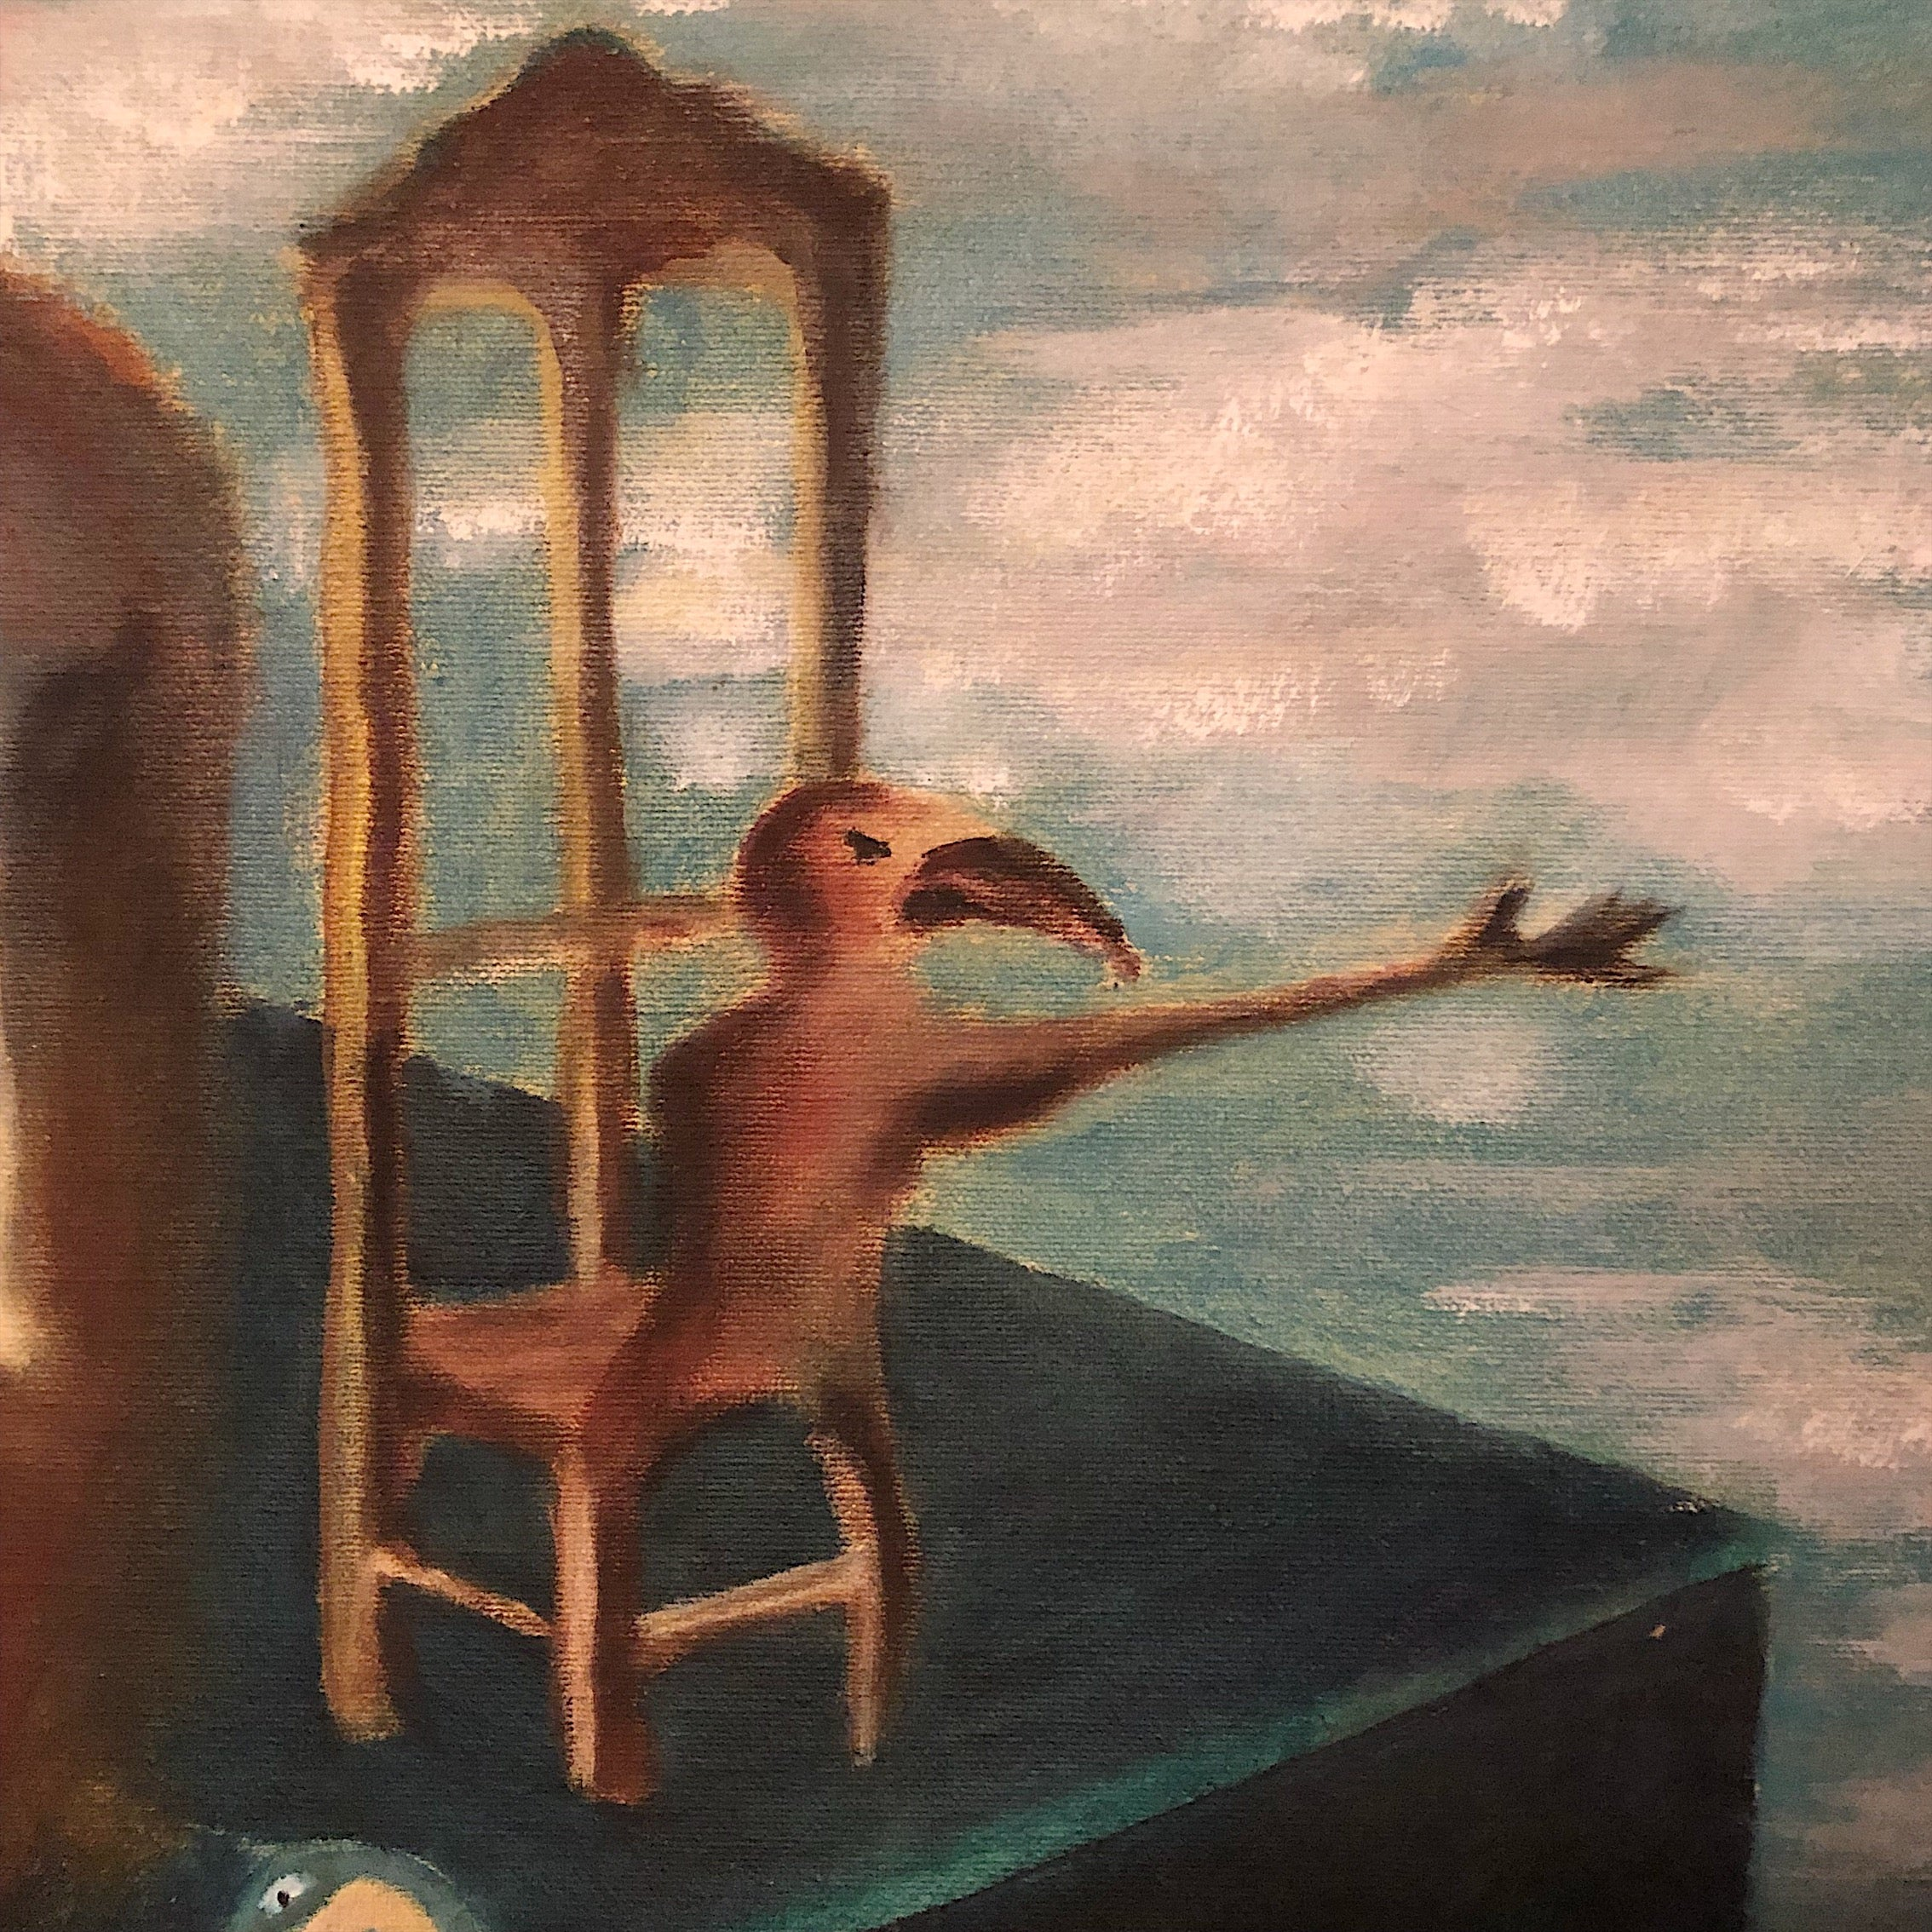 Vintage Surreal Painting from 1960s - Christopher Charles - Surrealist Artwork - Salvador Dali - Outsider Art - Unusual